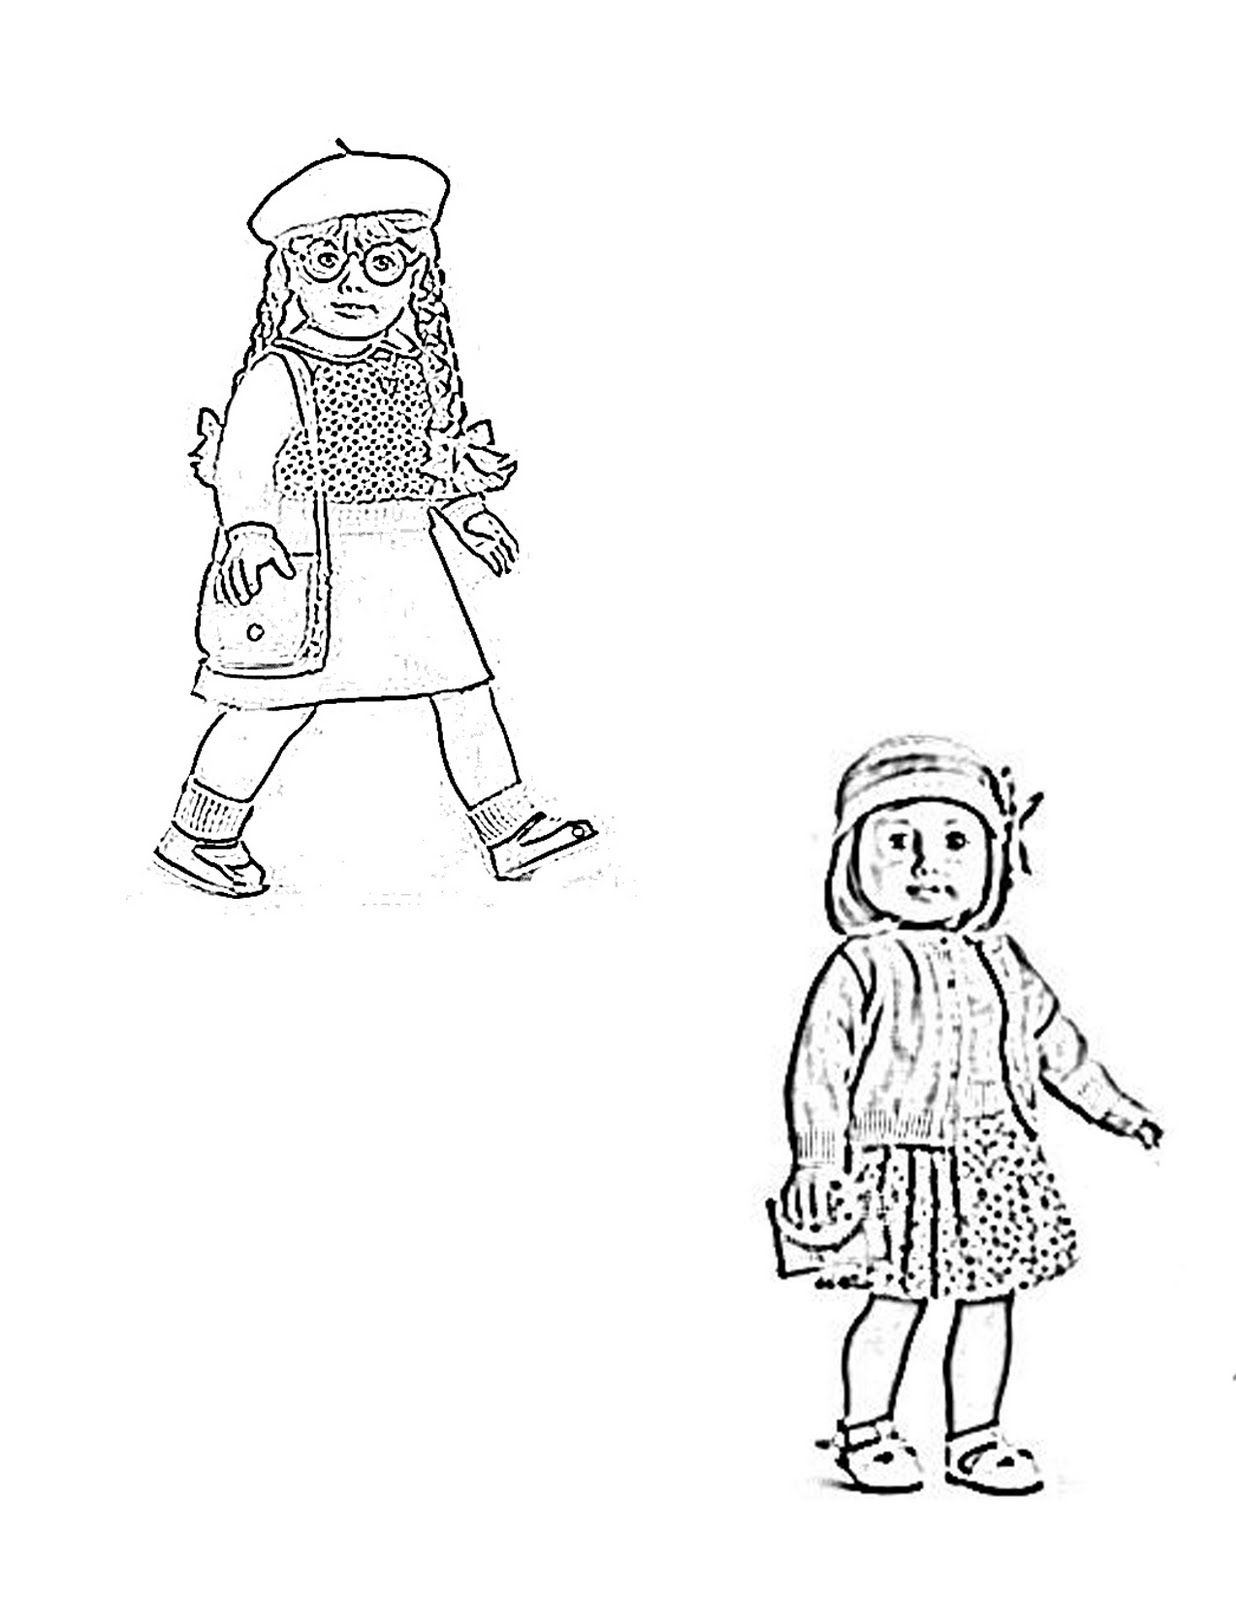 felicity merriman coloring pages - photo#6